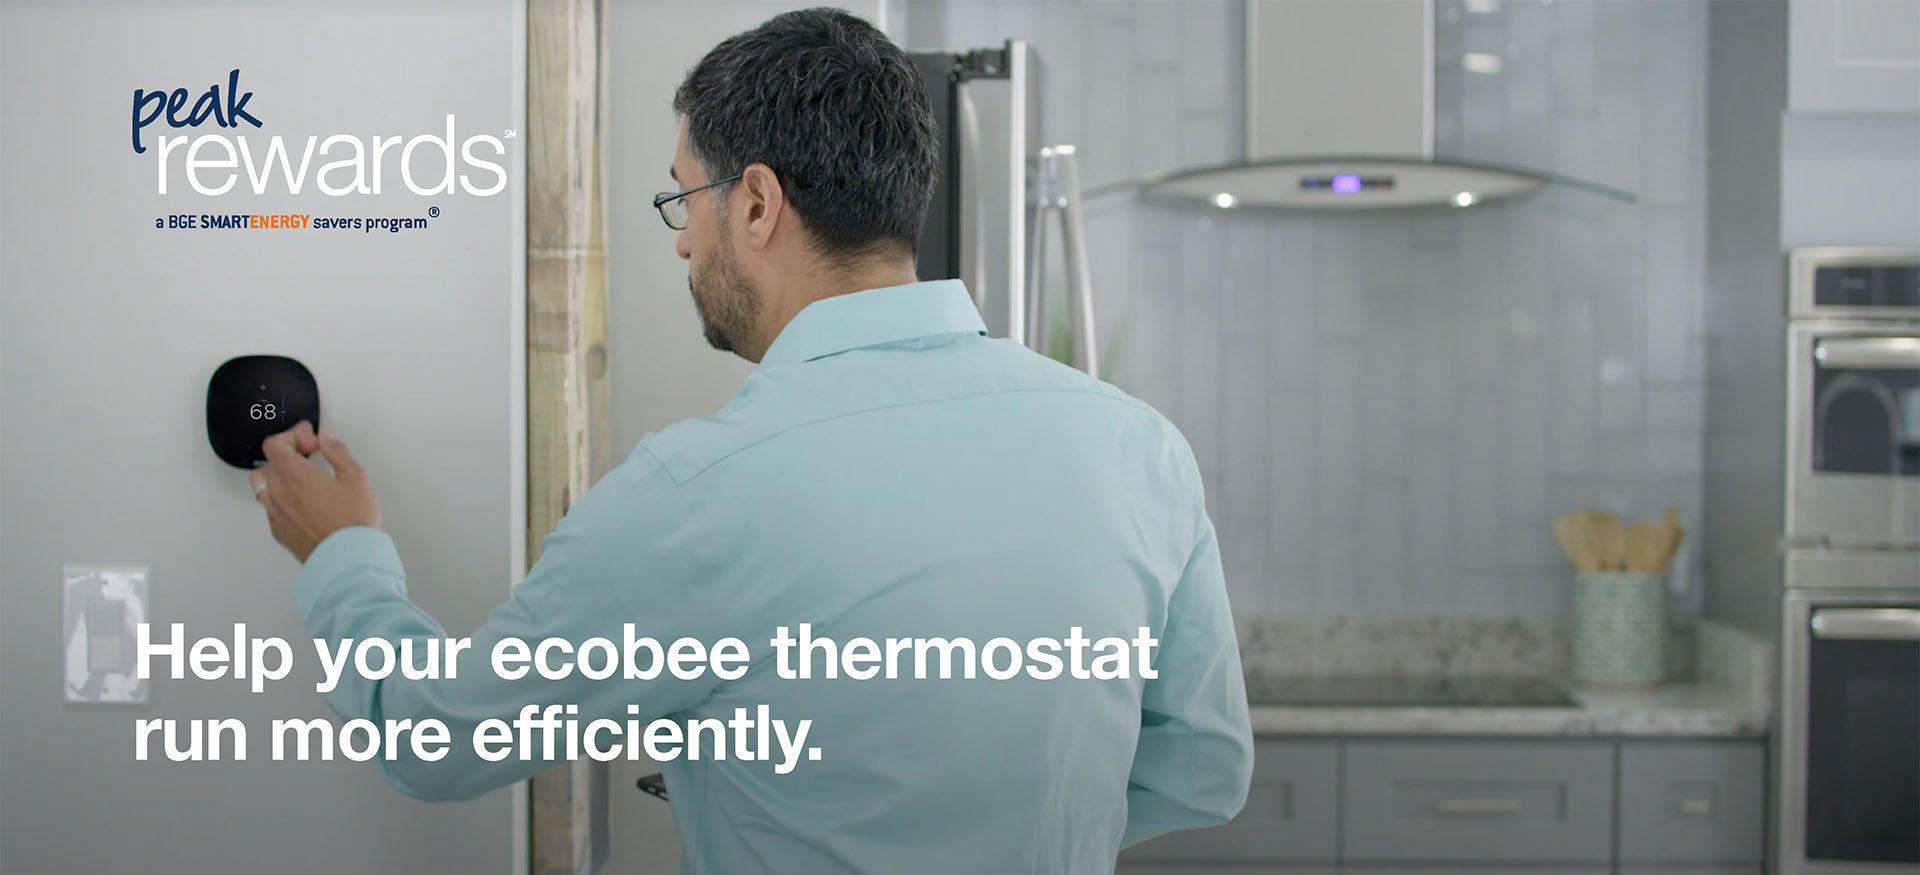 Help your ecobee thermostat run more efficiently.